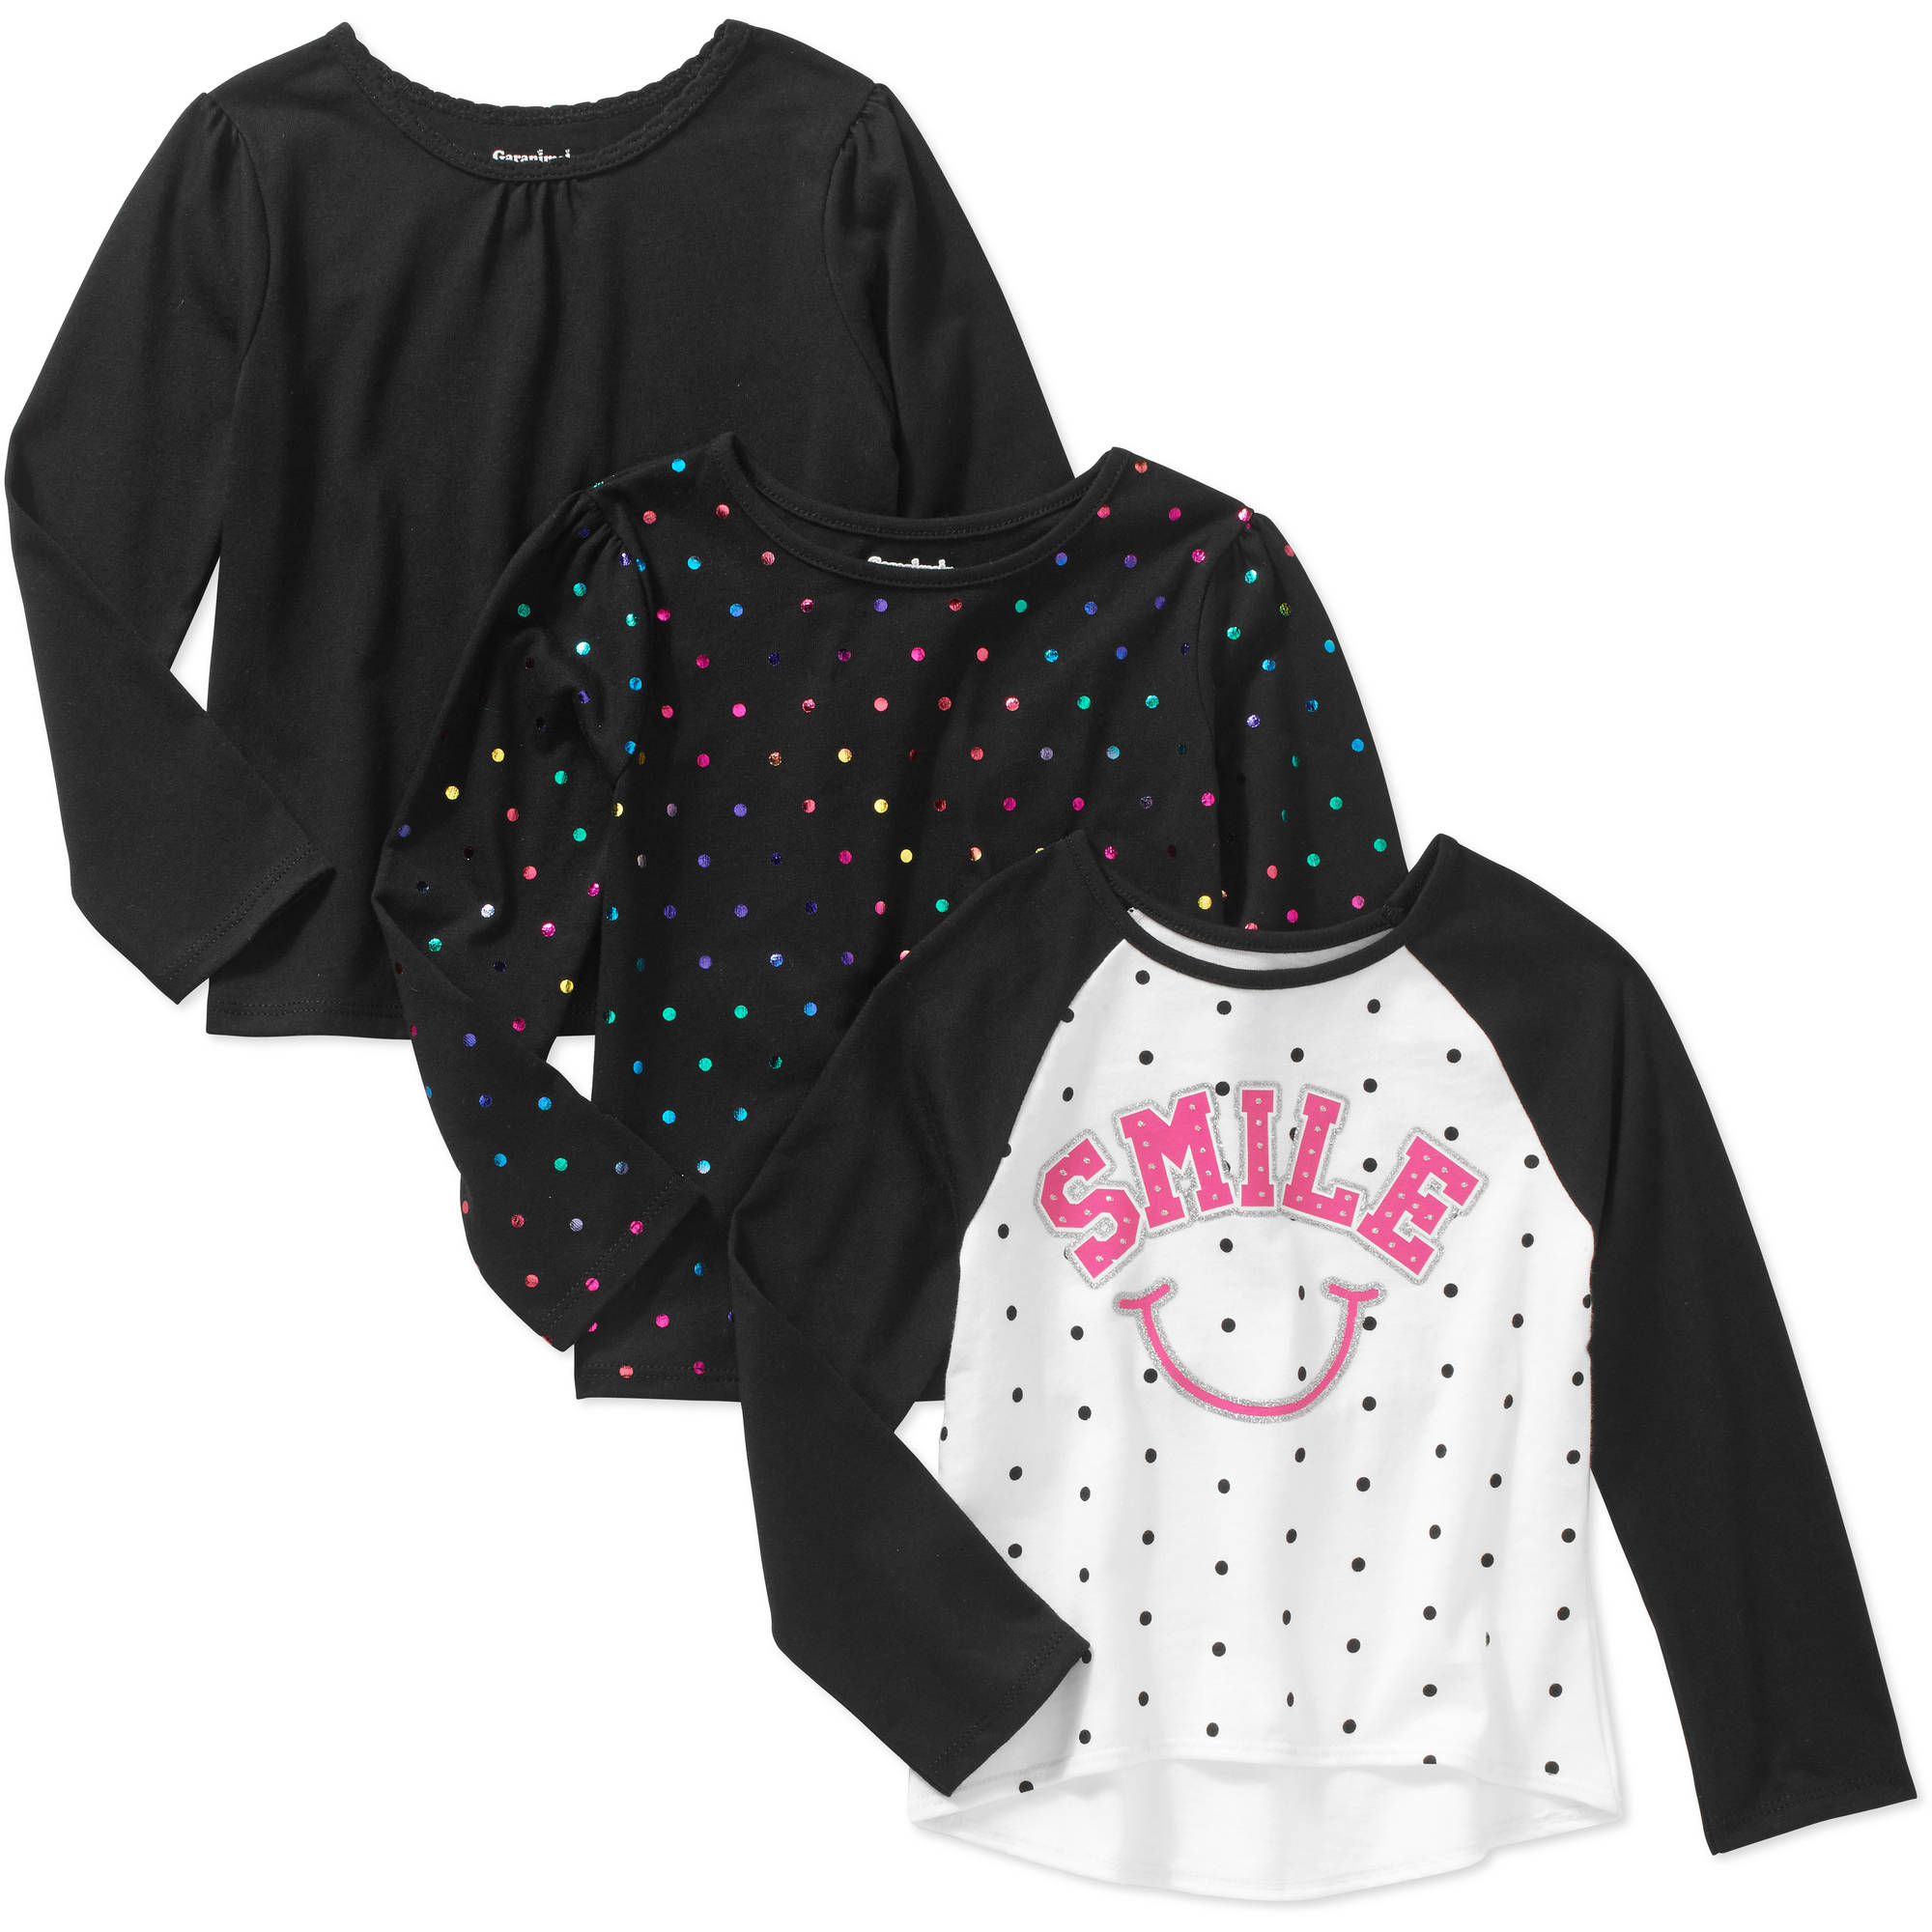 Garanimals Baby Toddler Girl 3-Piece Long Sleeve Solid Tee, Printed Tee & Raglan Tee Set